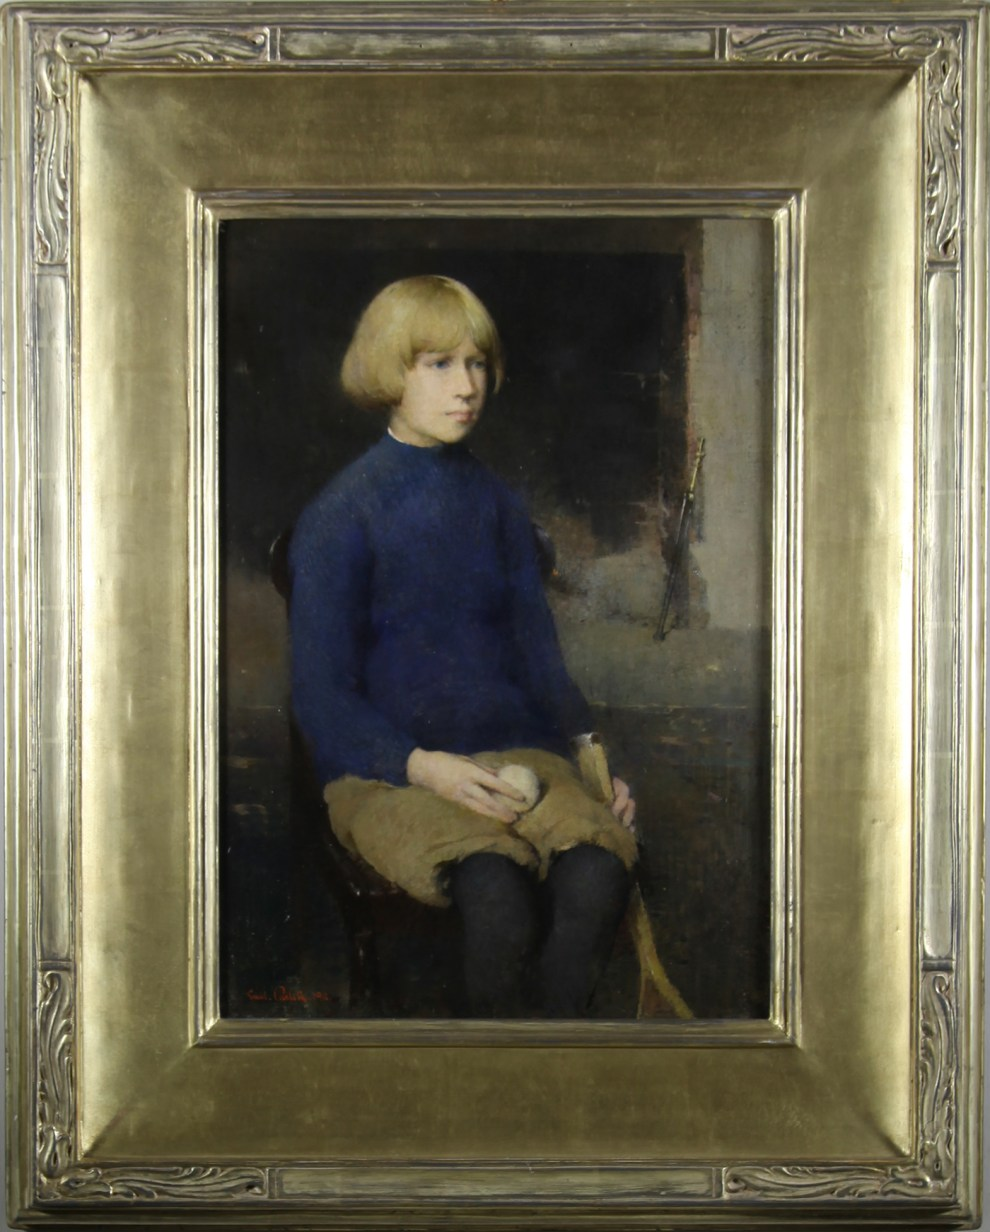 Dines Carlsen (also called Dines Carlsen at Ten & Dines Carlsen at 14 & Portrait of Dines No. 1), 1911 - Original Frame